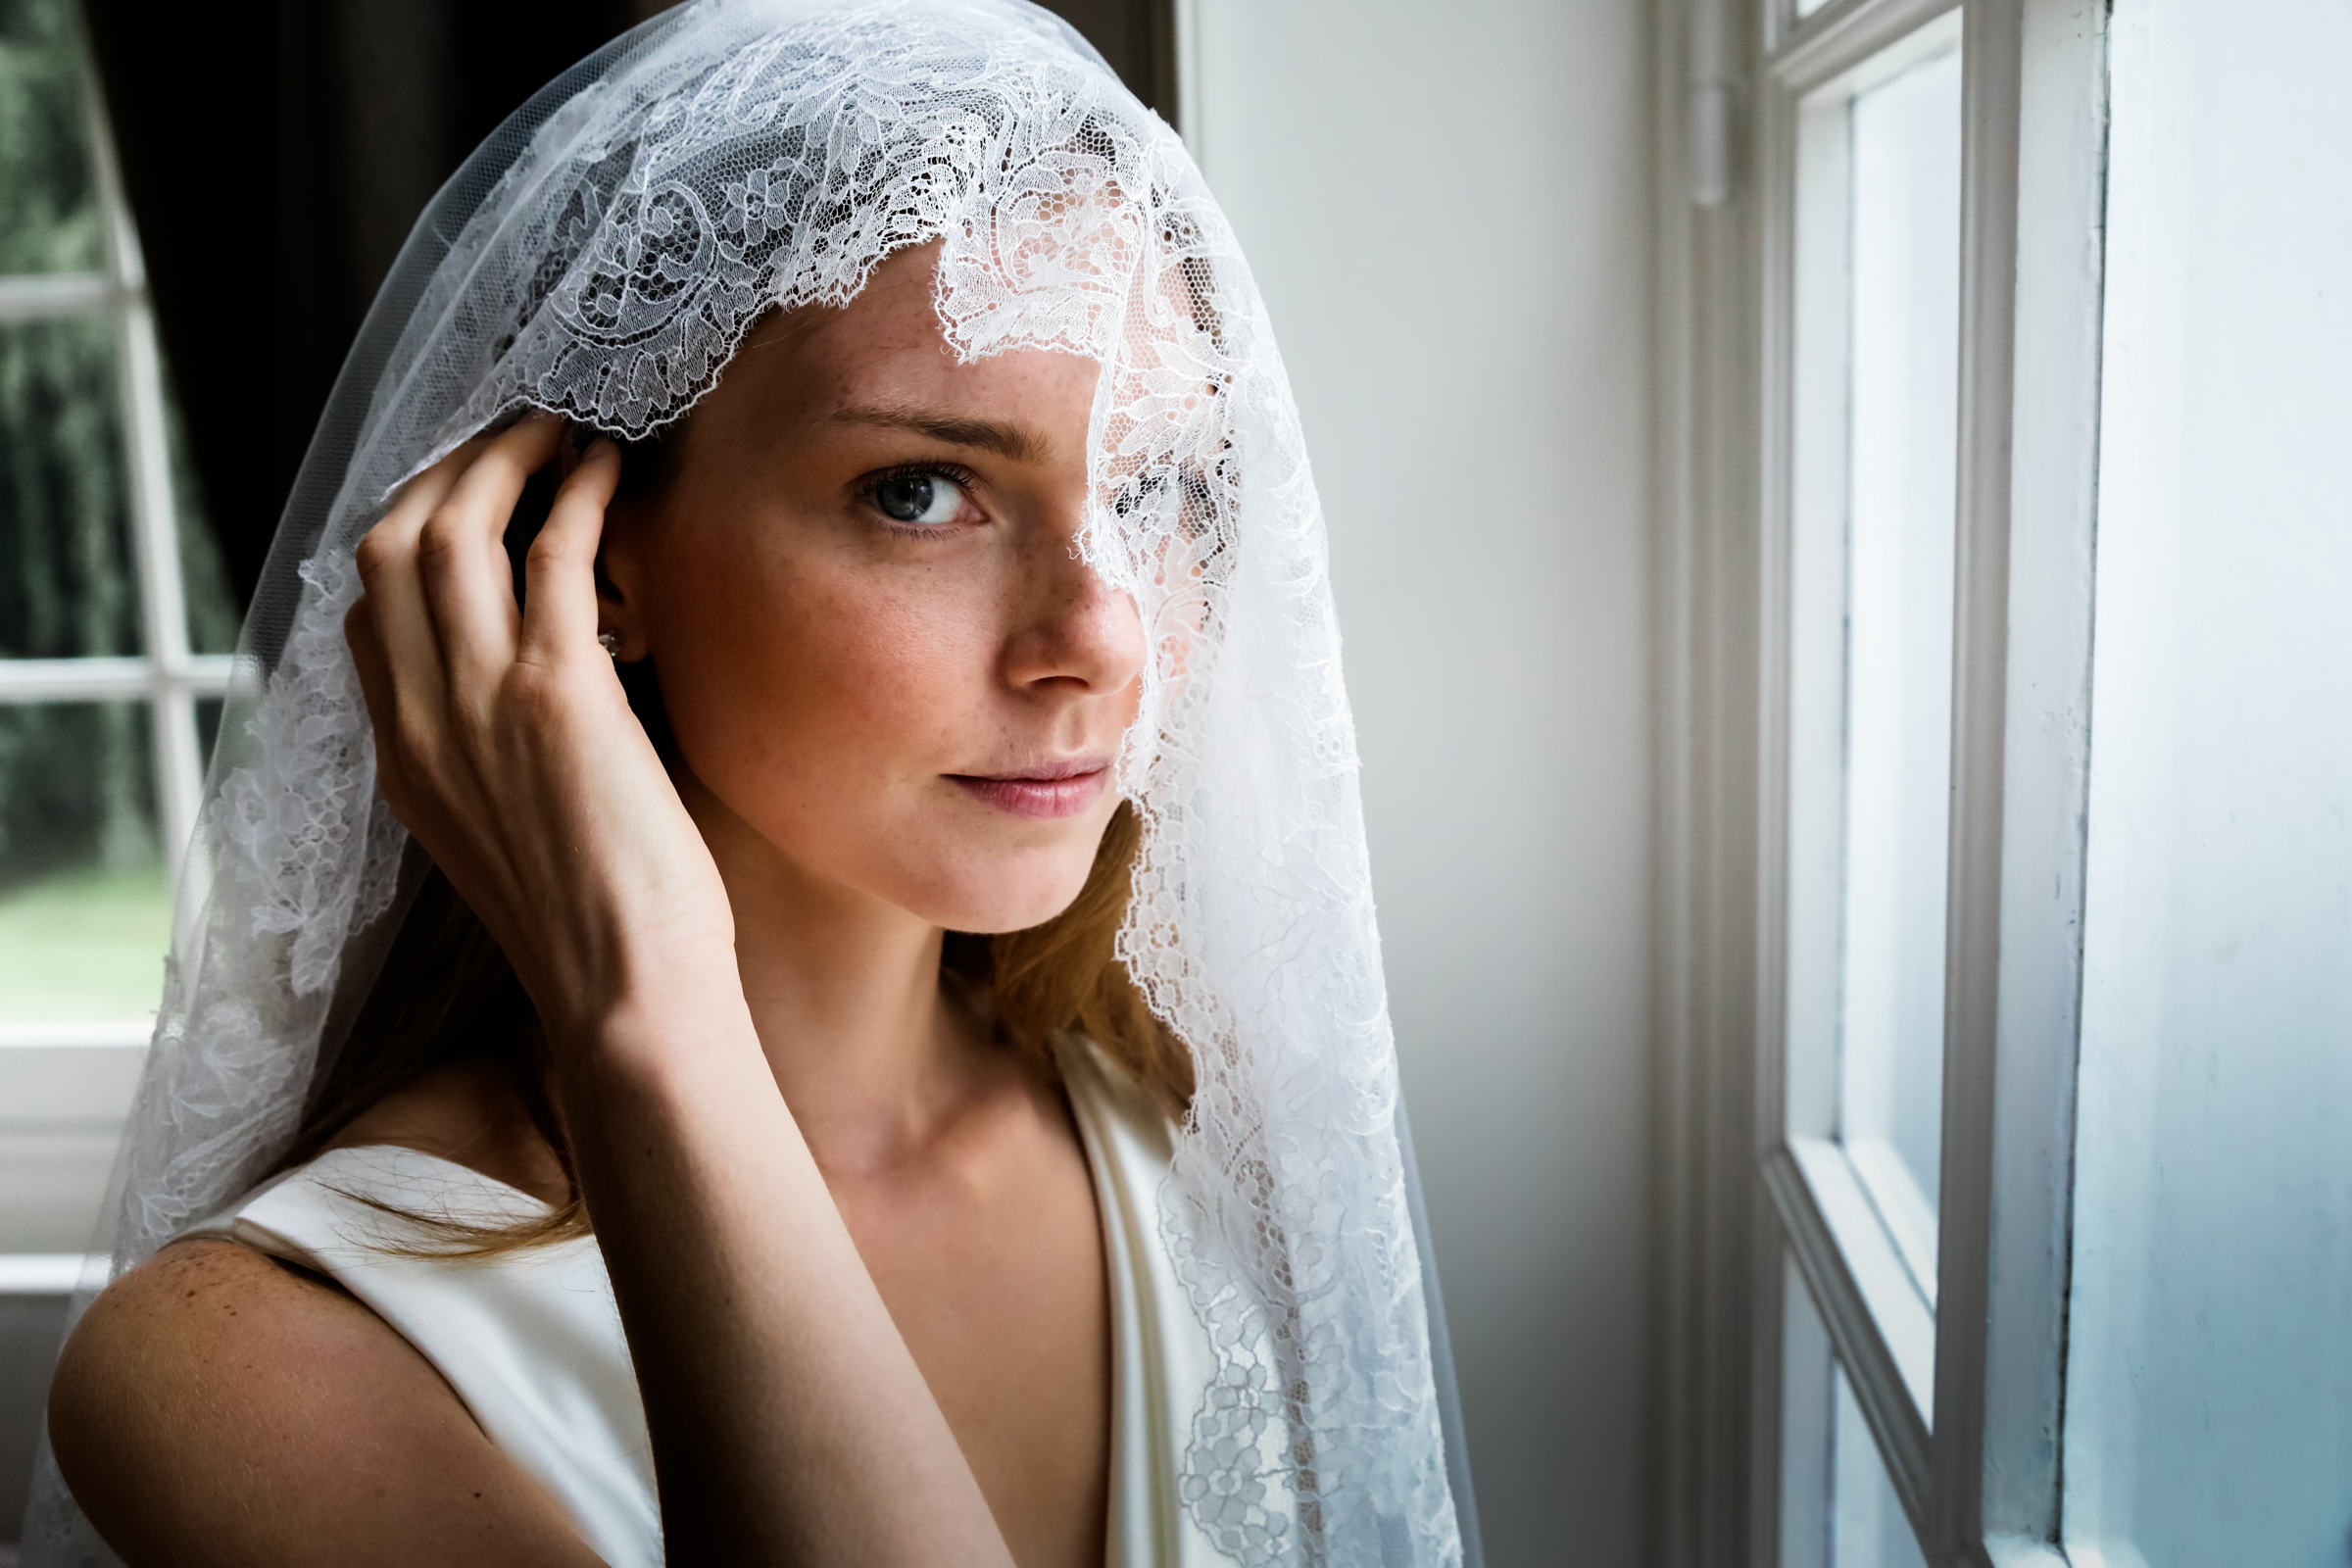 Bride peeks out from lace veil - photo by Julien Laurent-Georges